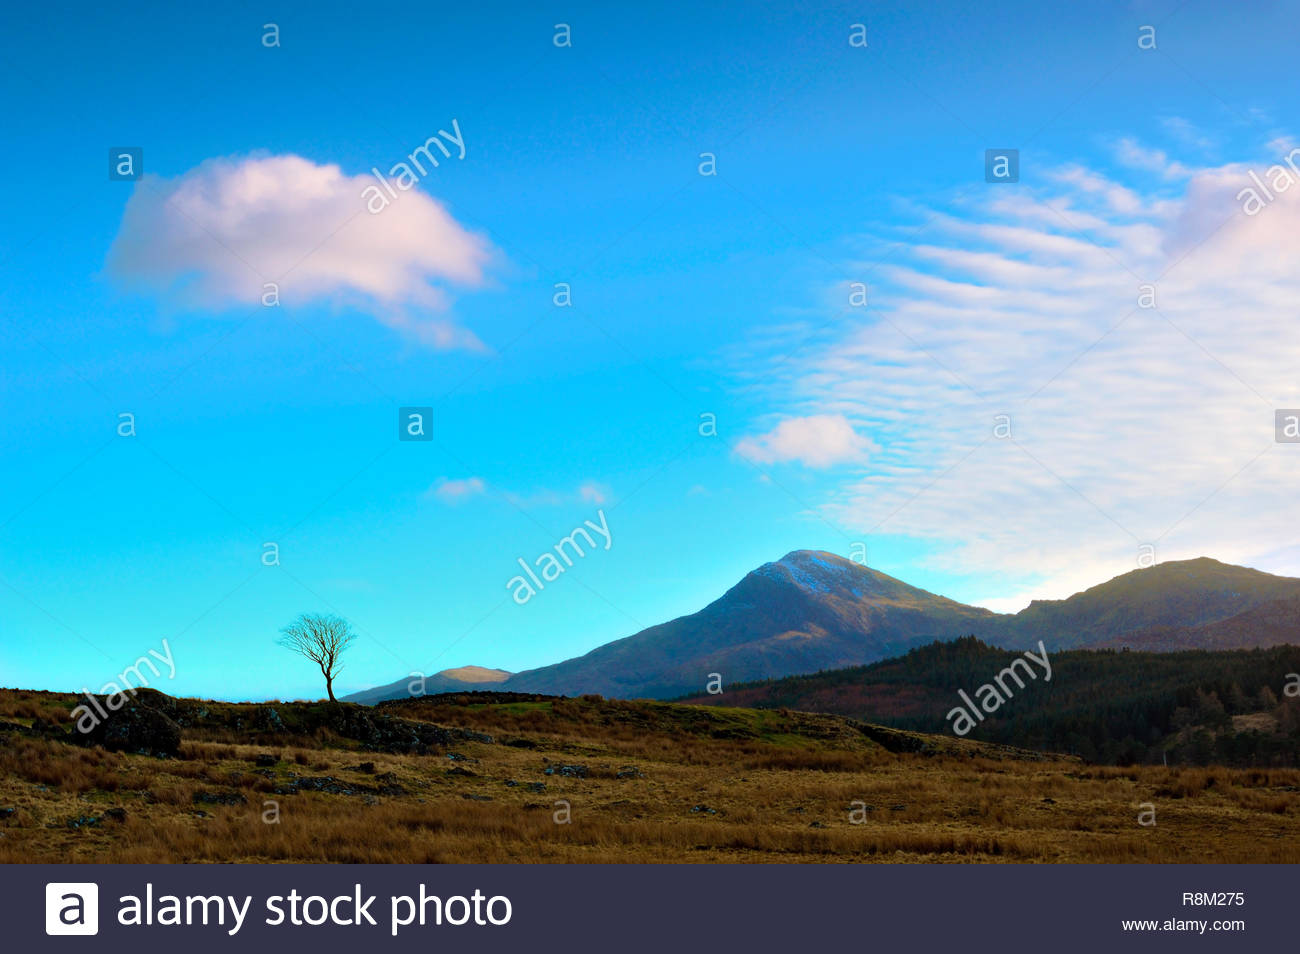 A winter's evening view of the sky and mountains in the Snowdonia National Park, Wales. Stock Photo